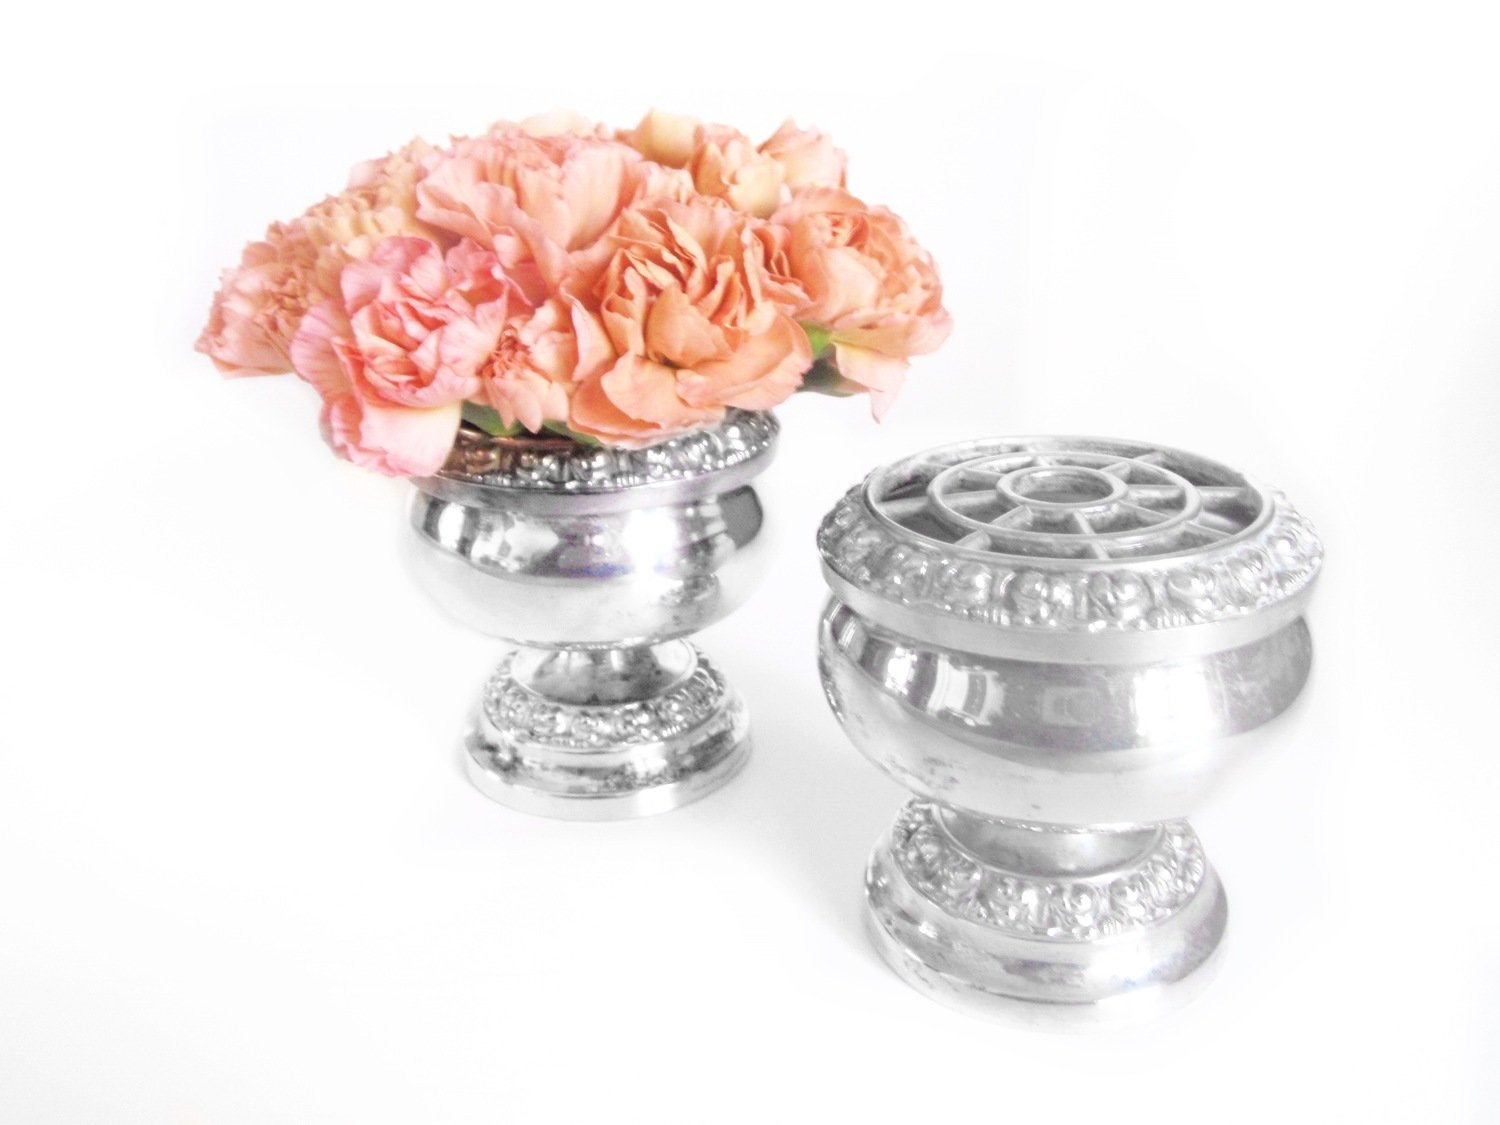 2 Silver Plated Rose Posy Bowl Bowls - Vintage Flower Frog MCM